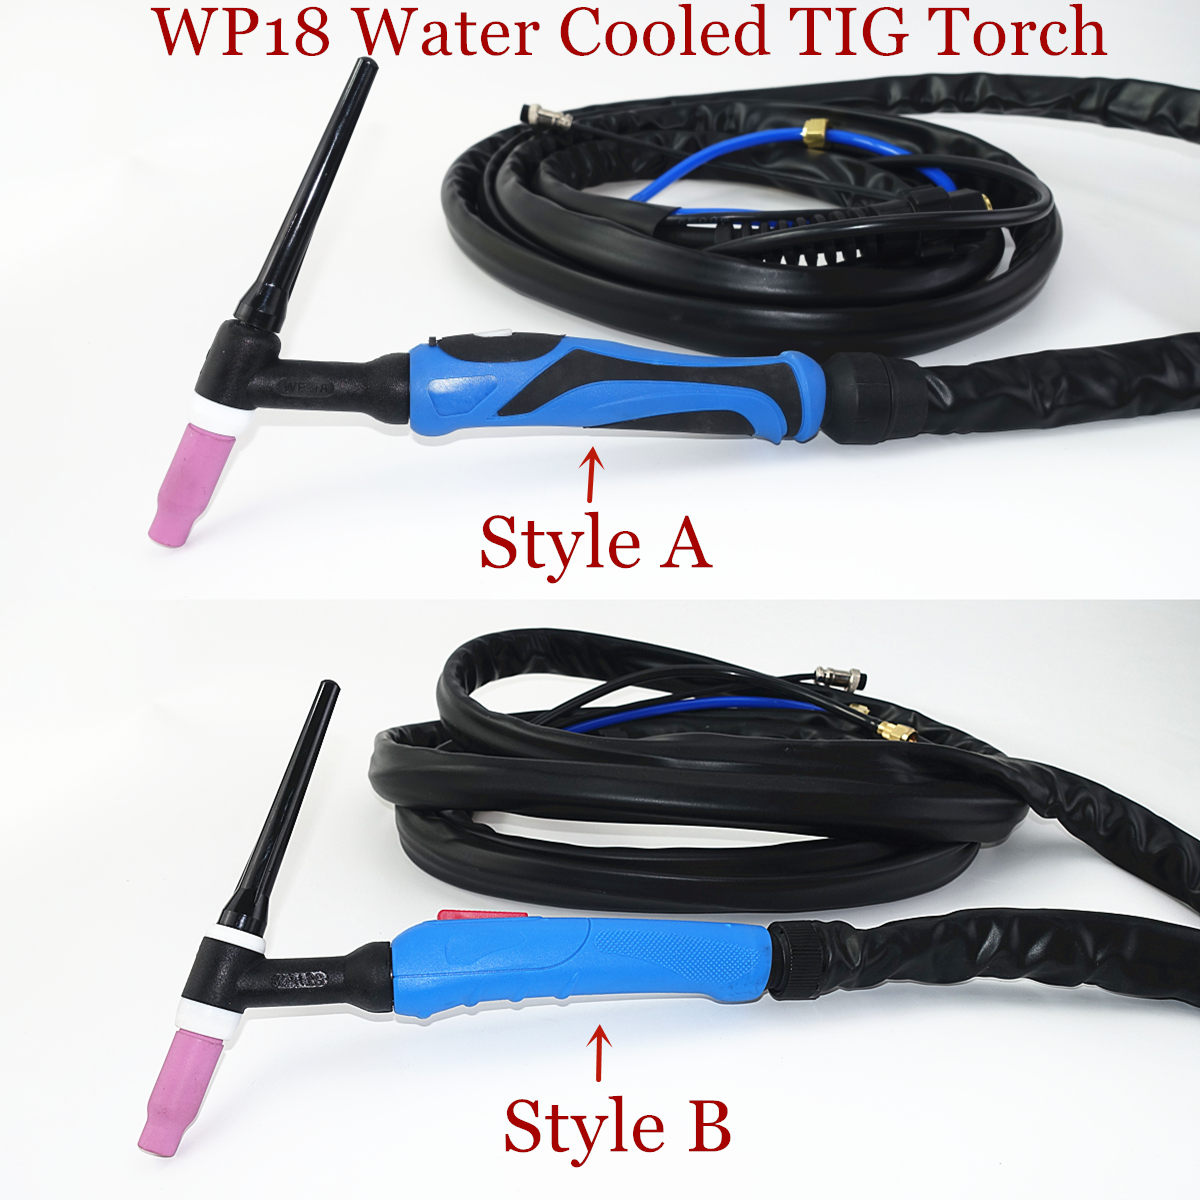 WP18 Water Cooled TIG Welding Torch W350 TIG Gun 350A Argon Tungsten Welding 4m 13ft Cable TIG Torch